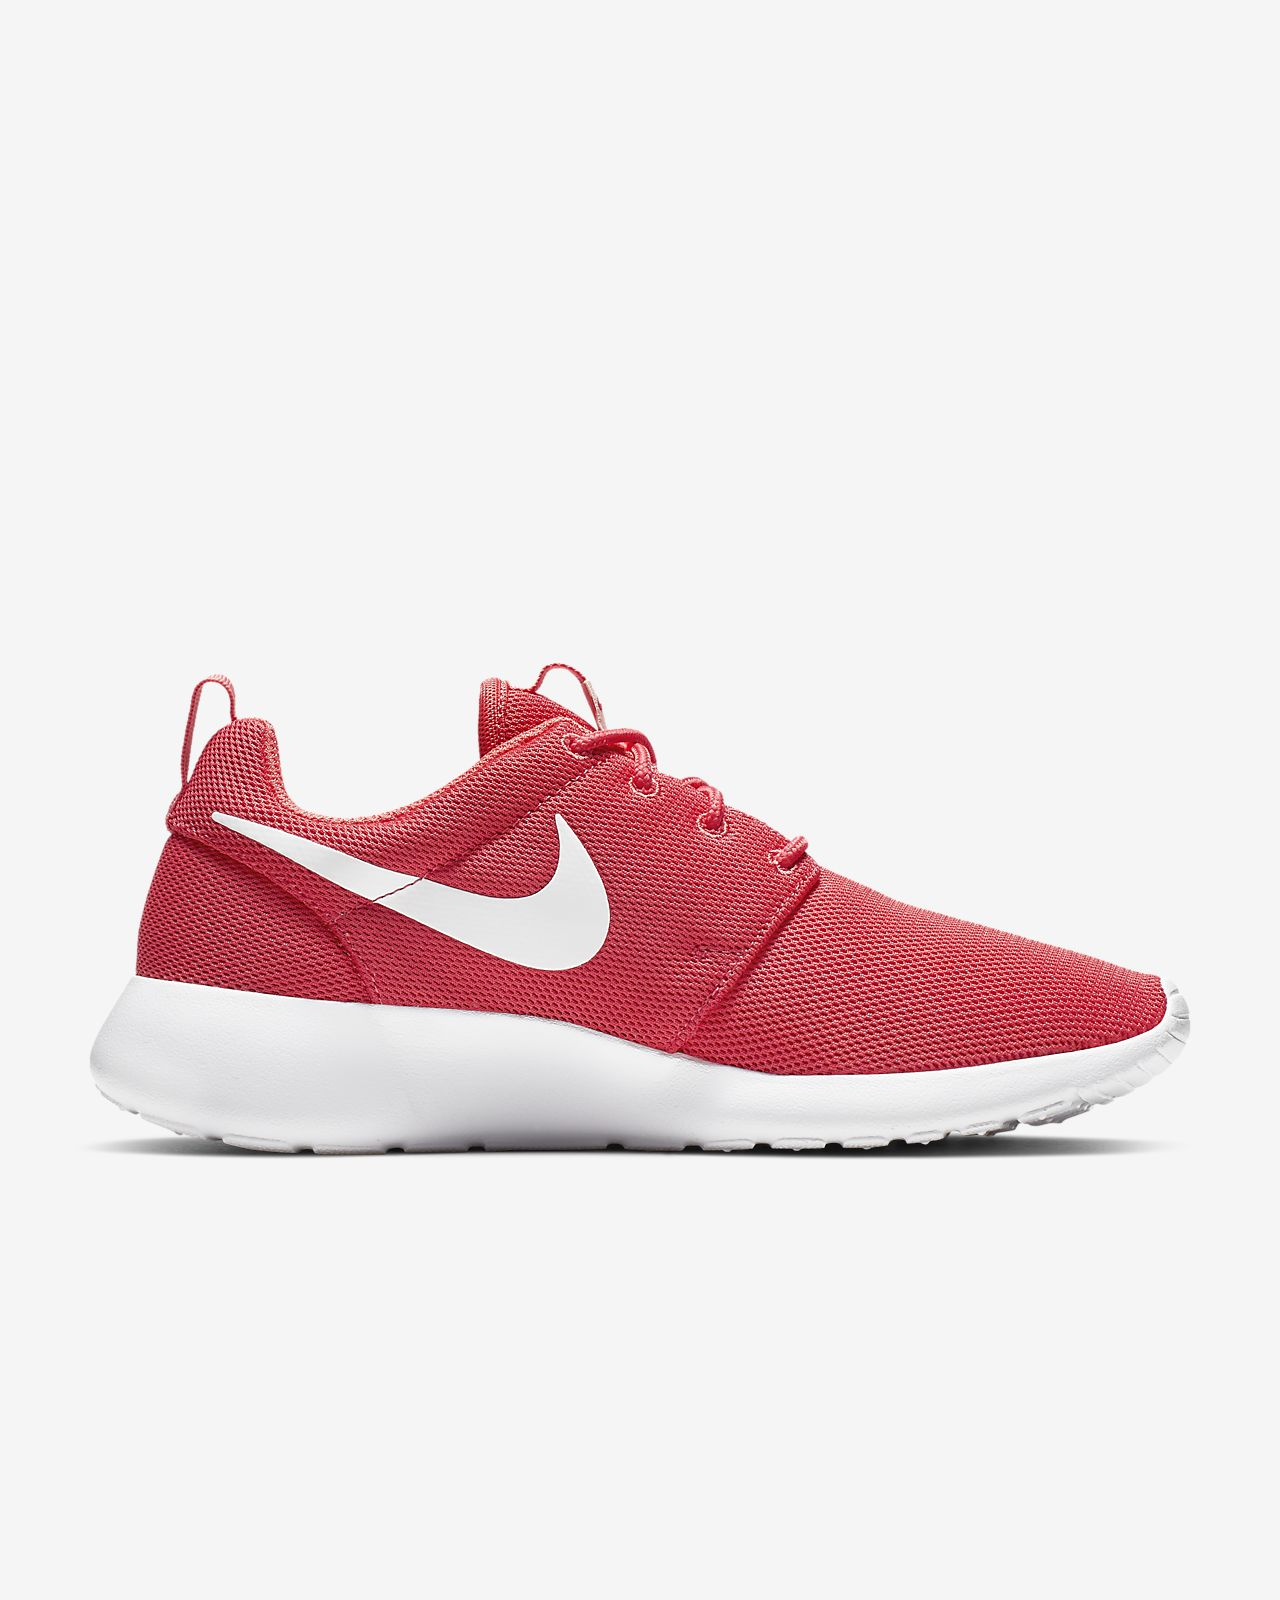 premium selection a374b bbc6b ... Nike Roshe One Women s Shoe